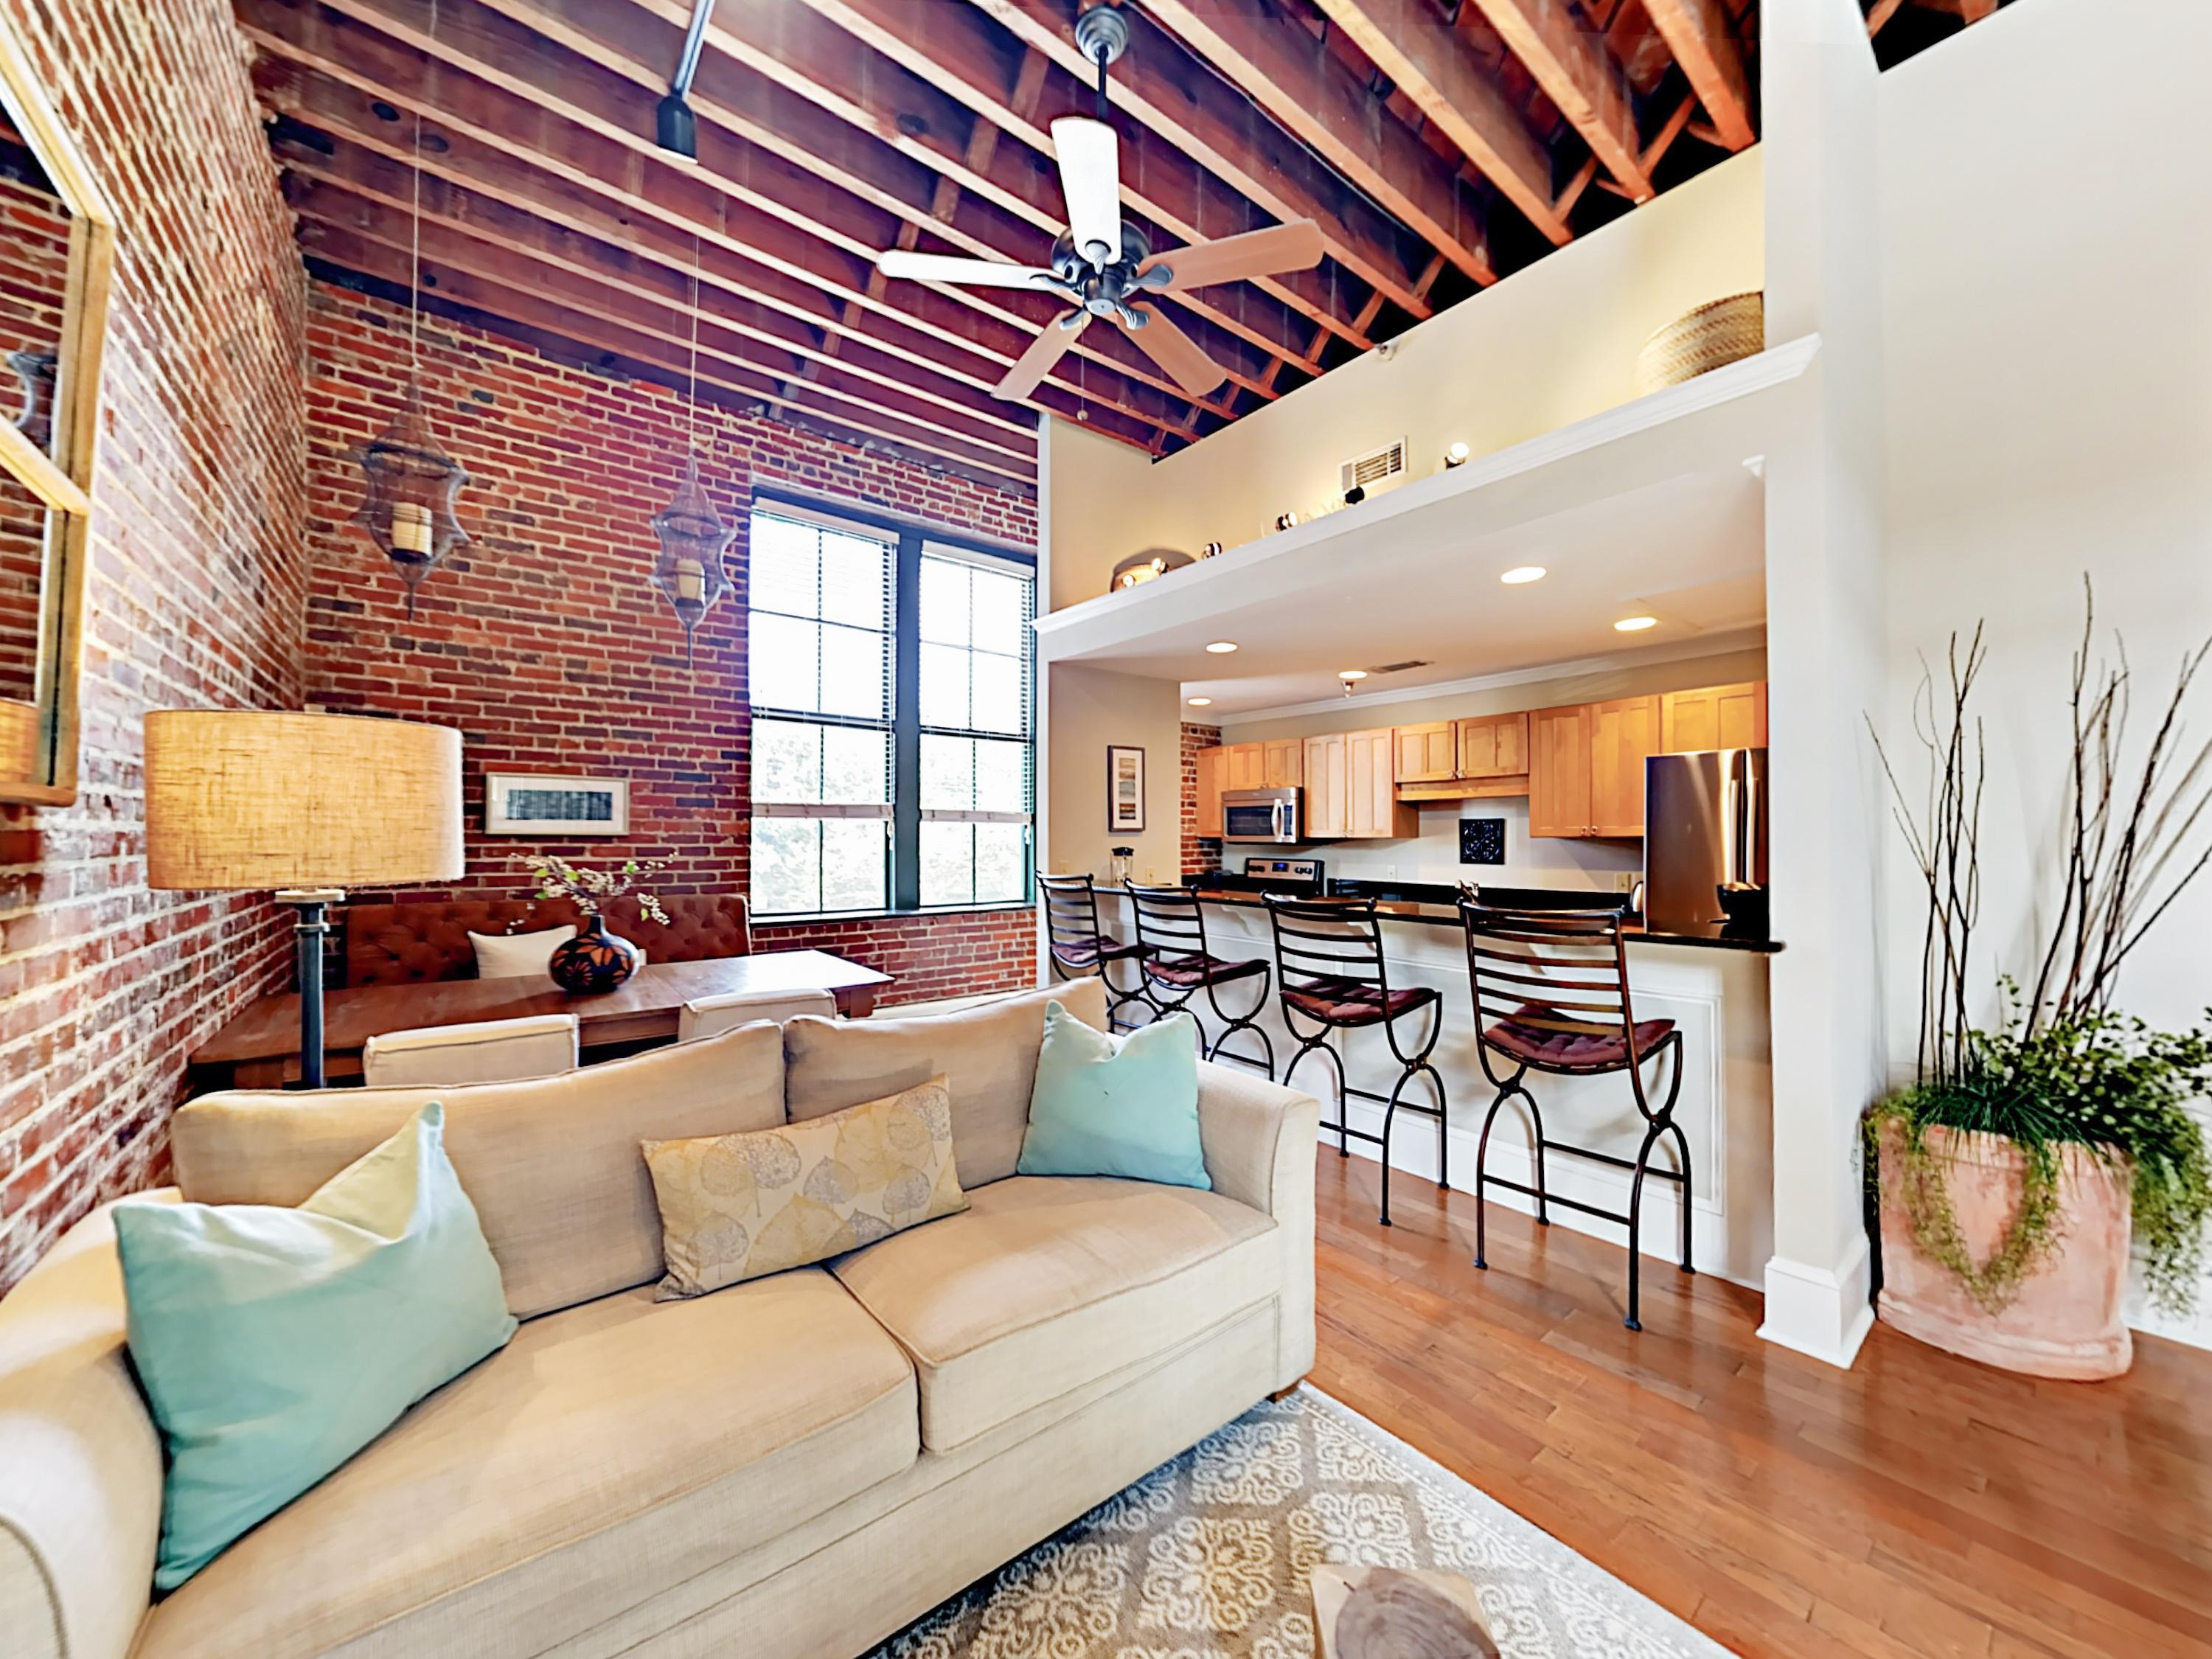 Exquisite Exposed Brick Loft on Congress Street